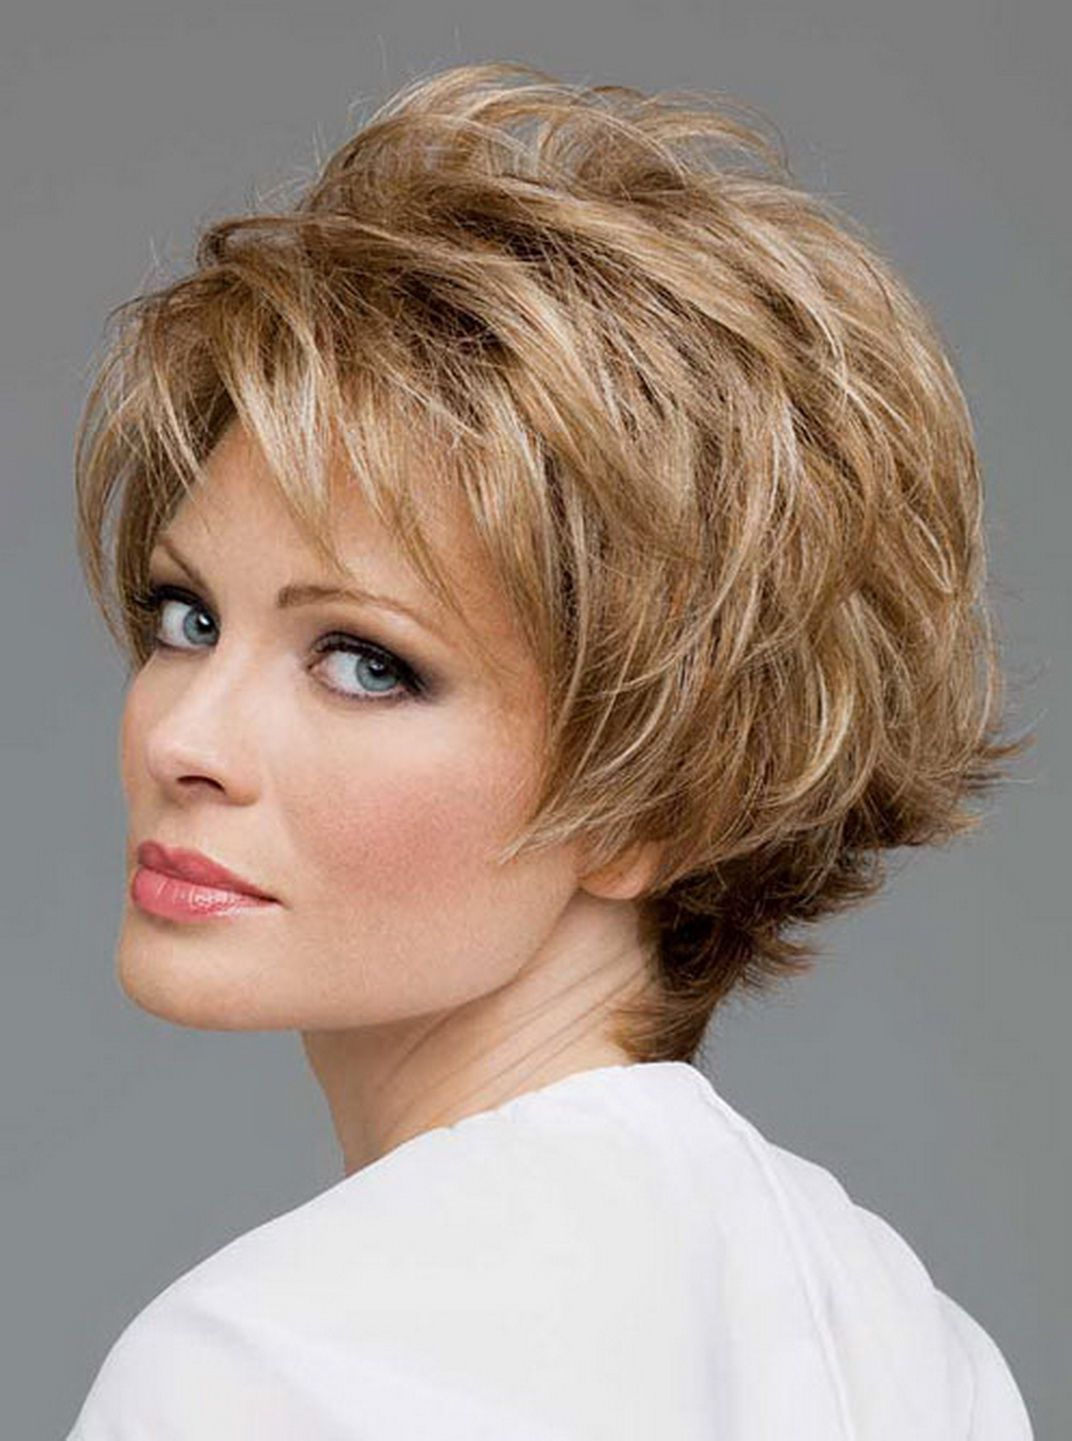 Edgy+Hairstyles+For+Over+60   Trendy Short Hair Trends Haircuts For With Regard To Short Hairstyles For Fine Hair Over  (View 9 of 25)